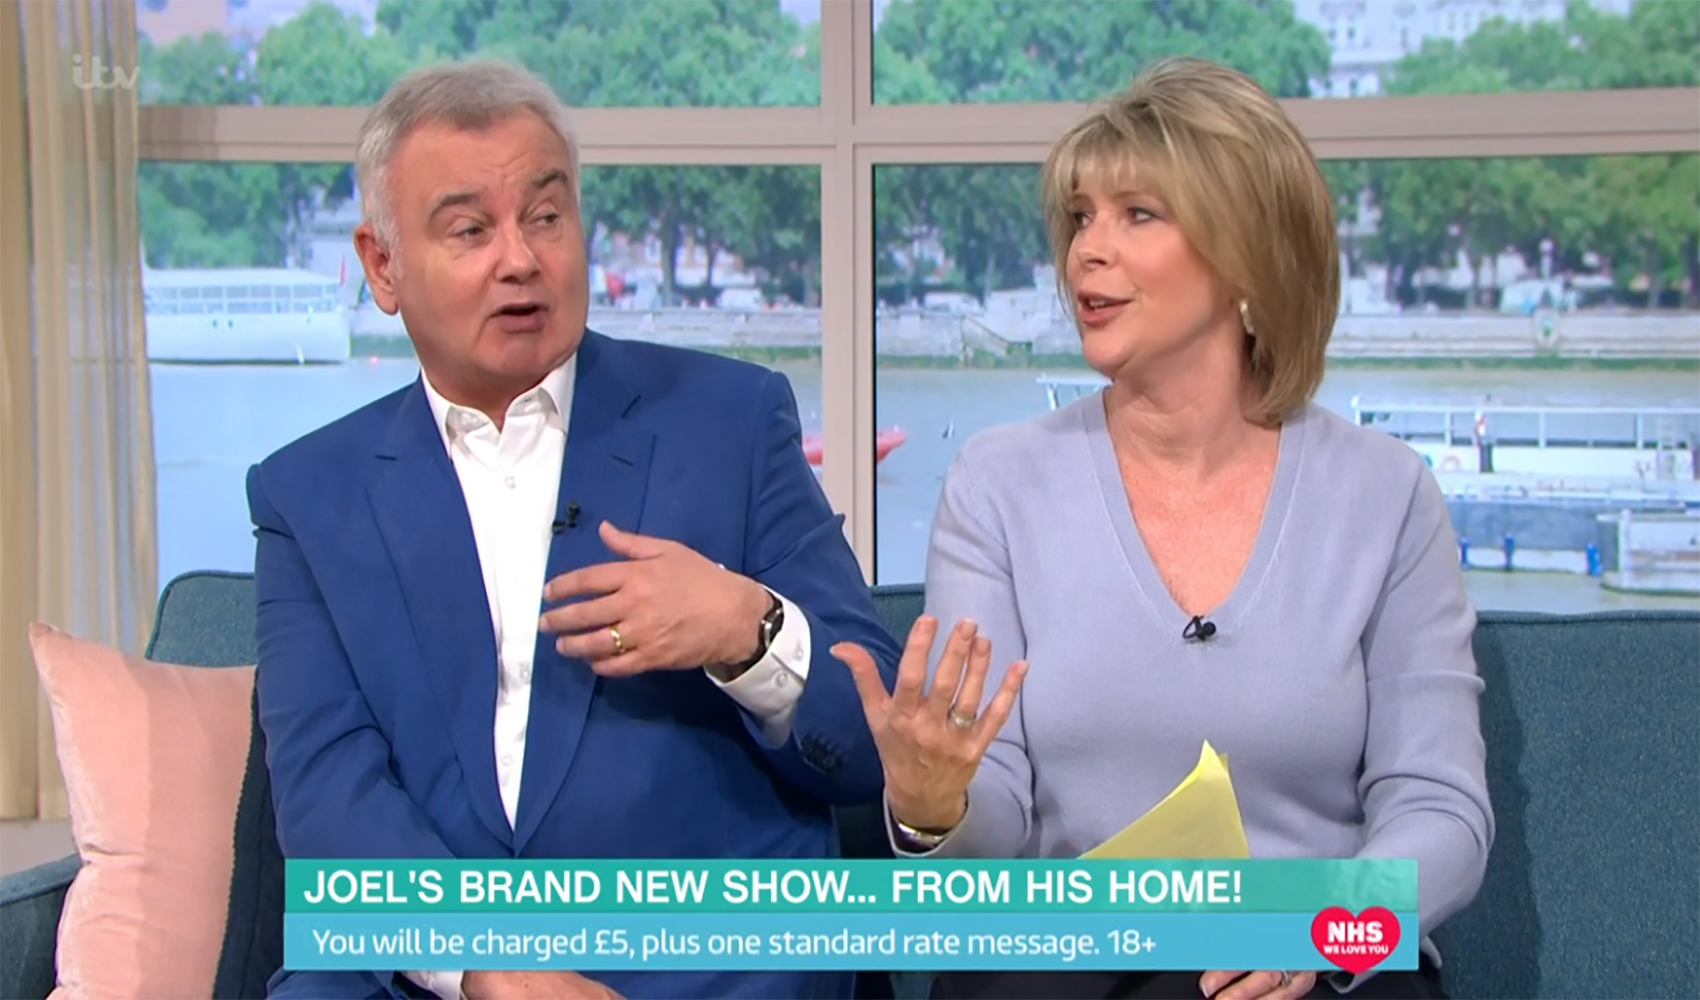 Eamonn Holmes makes dig at Ruth Langsford for not taking his last name at their wedding